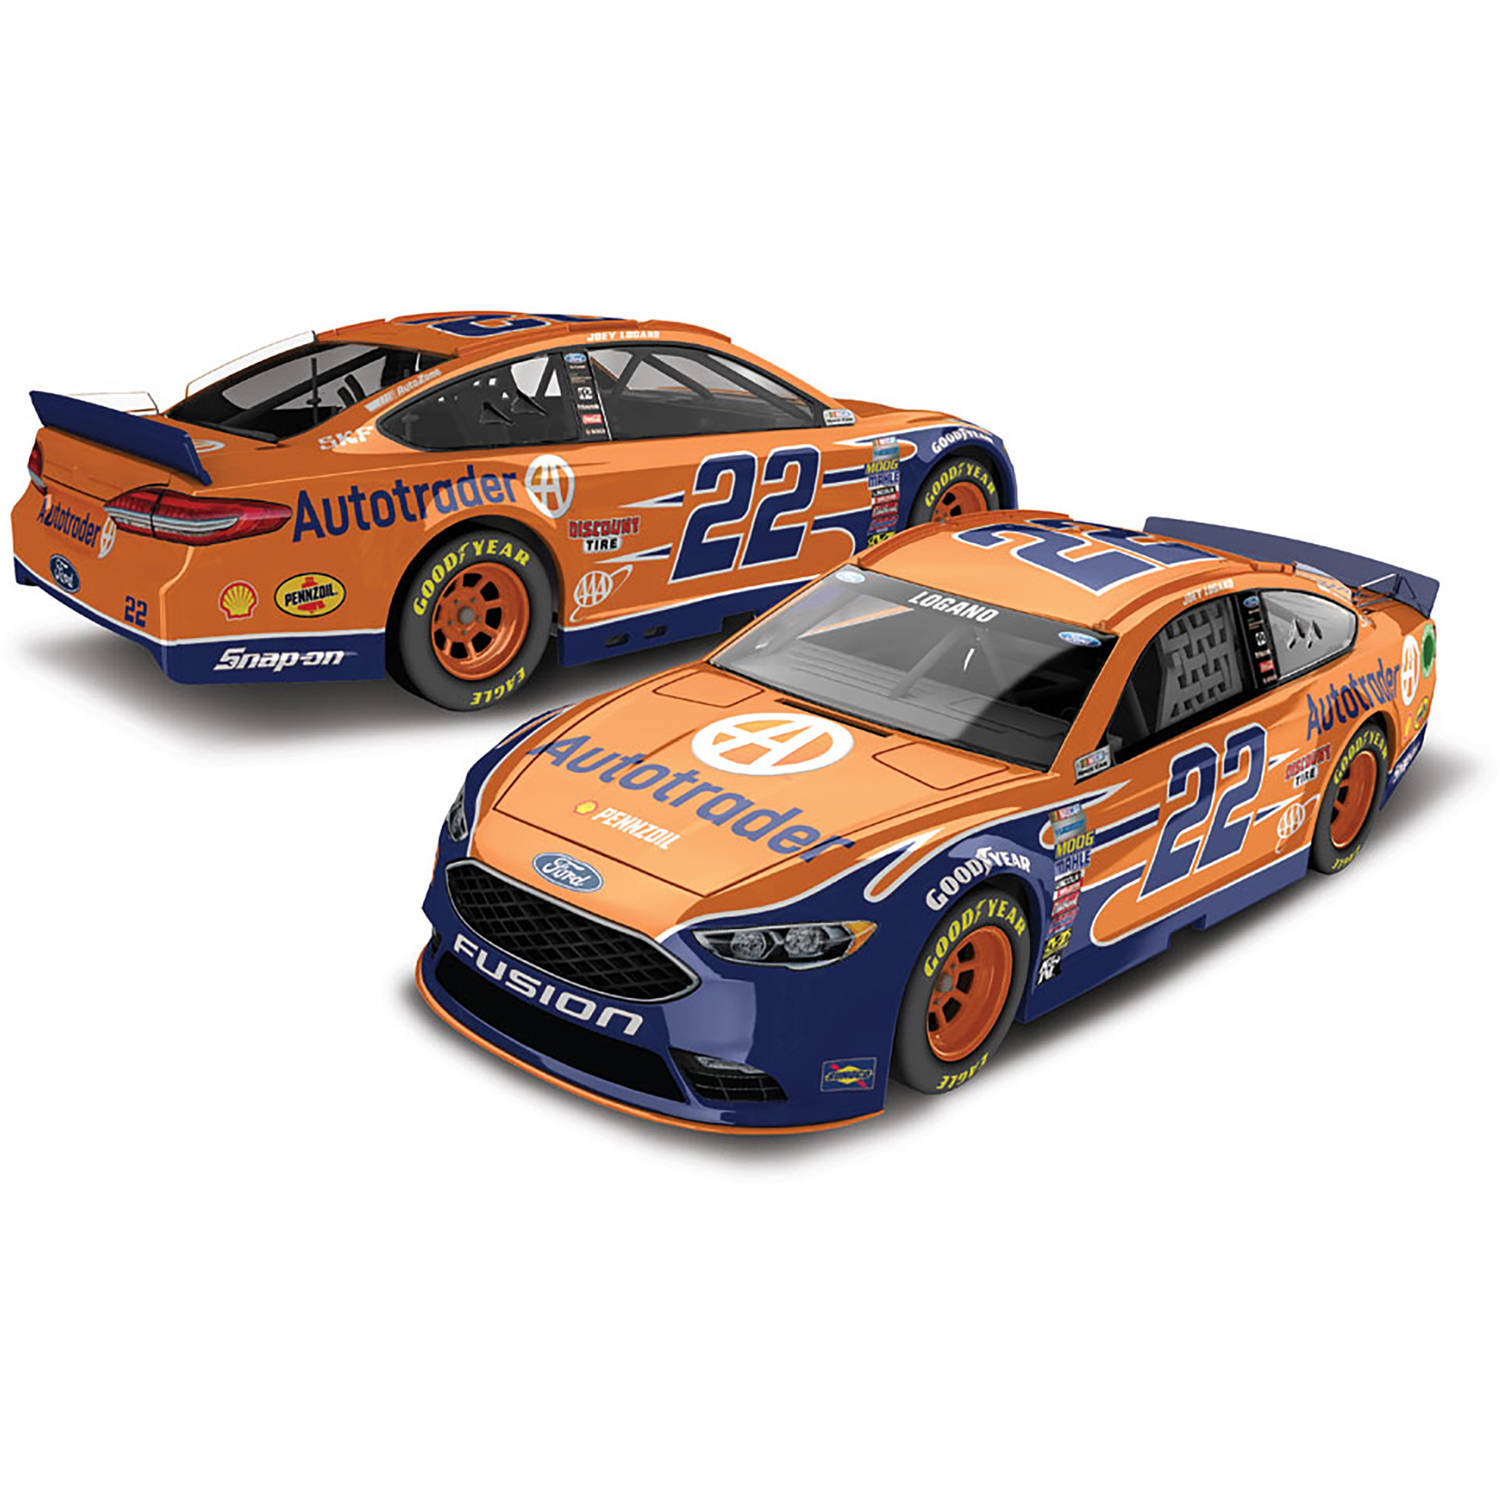 Lionel Racing Joey Logano #22 Auto Trader 2017 Ford Fusion 1:64th Scale Hard-Top Official Diecast of the NASCAR Cup Series